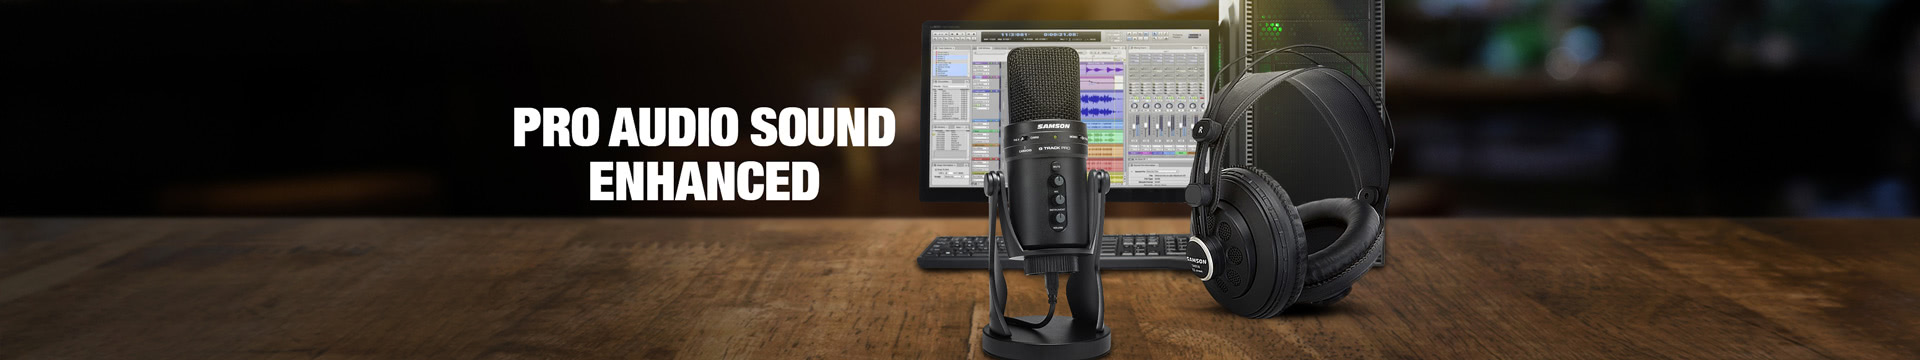 PRO AUDIO SOUND ENHANCED